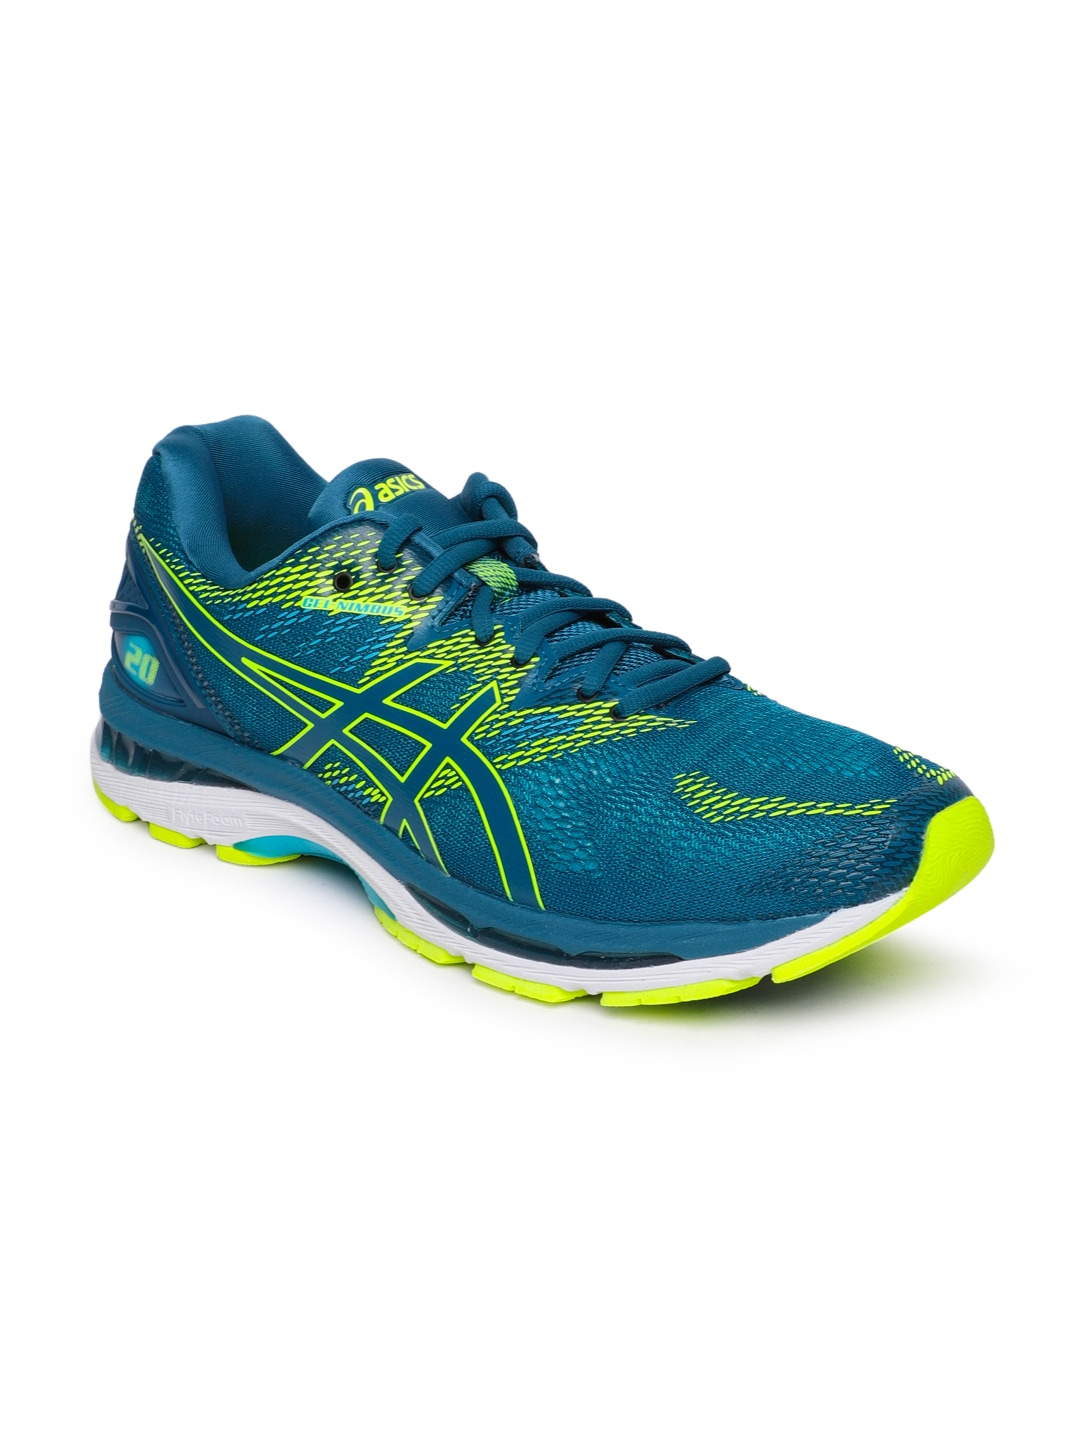 c1482277eef Asics Shoes - Buy Asics Shoes for Men and Women Online - Myntra